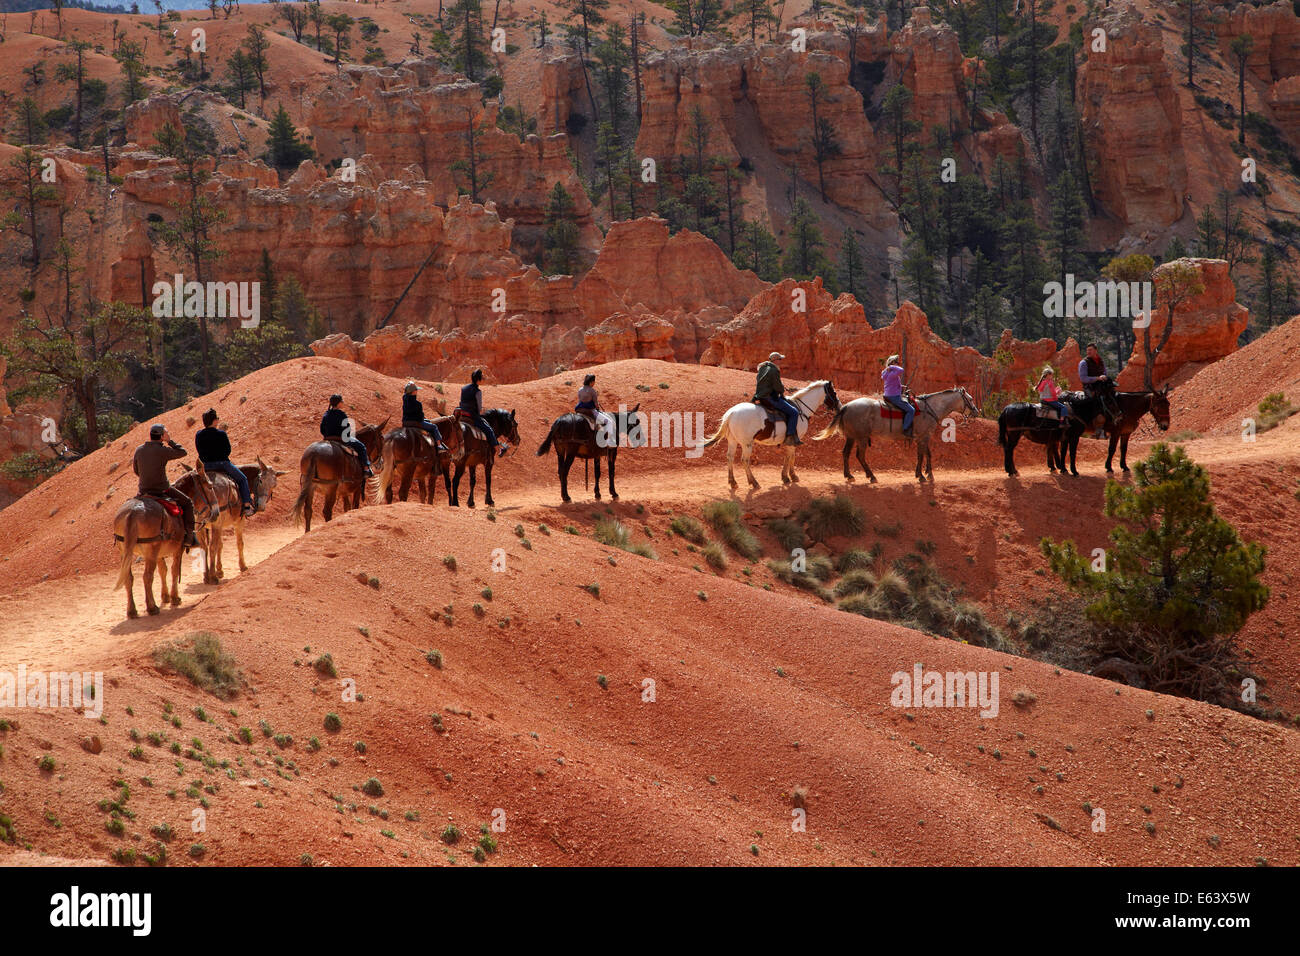 Horse trekkers near Queen's Garden Trail through hoodoos, Bryce Canyon National Park, Utah, USA - Stock Image